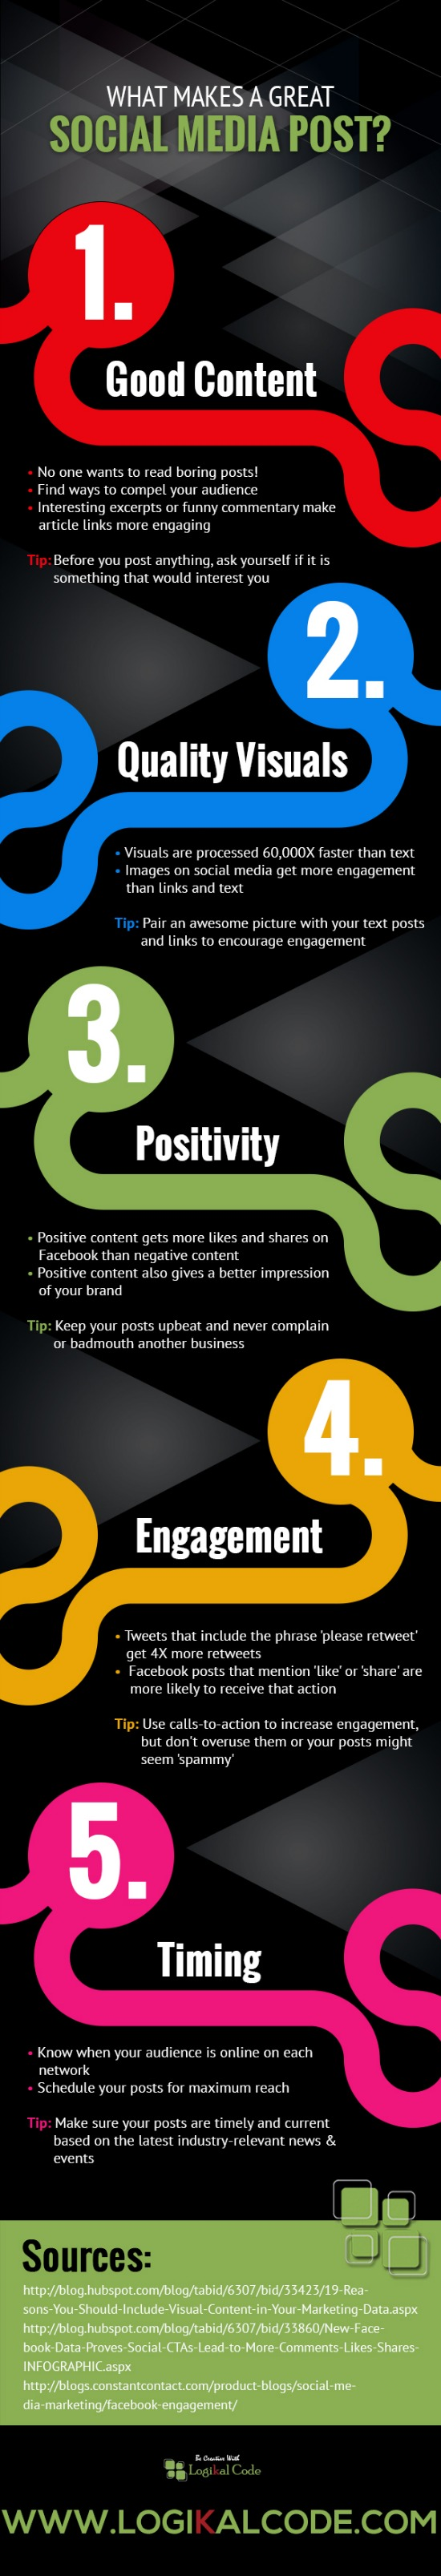 How To Create Good Social Media Posts - #infographic